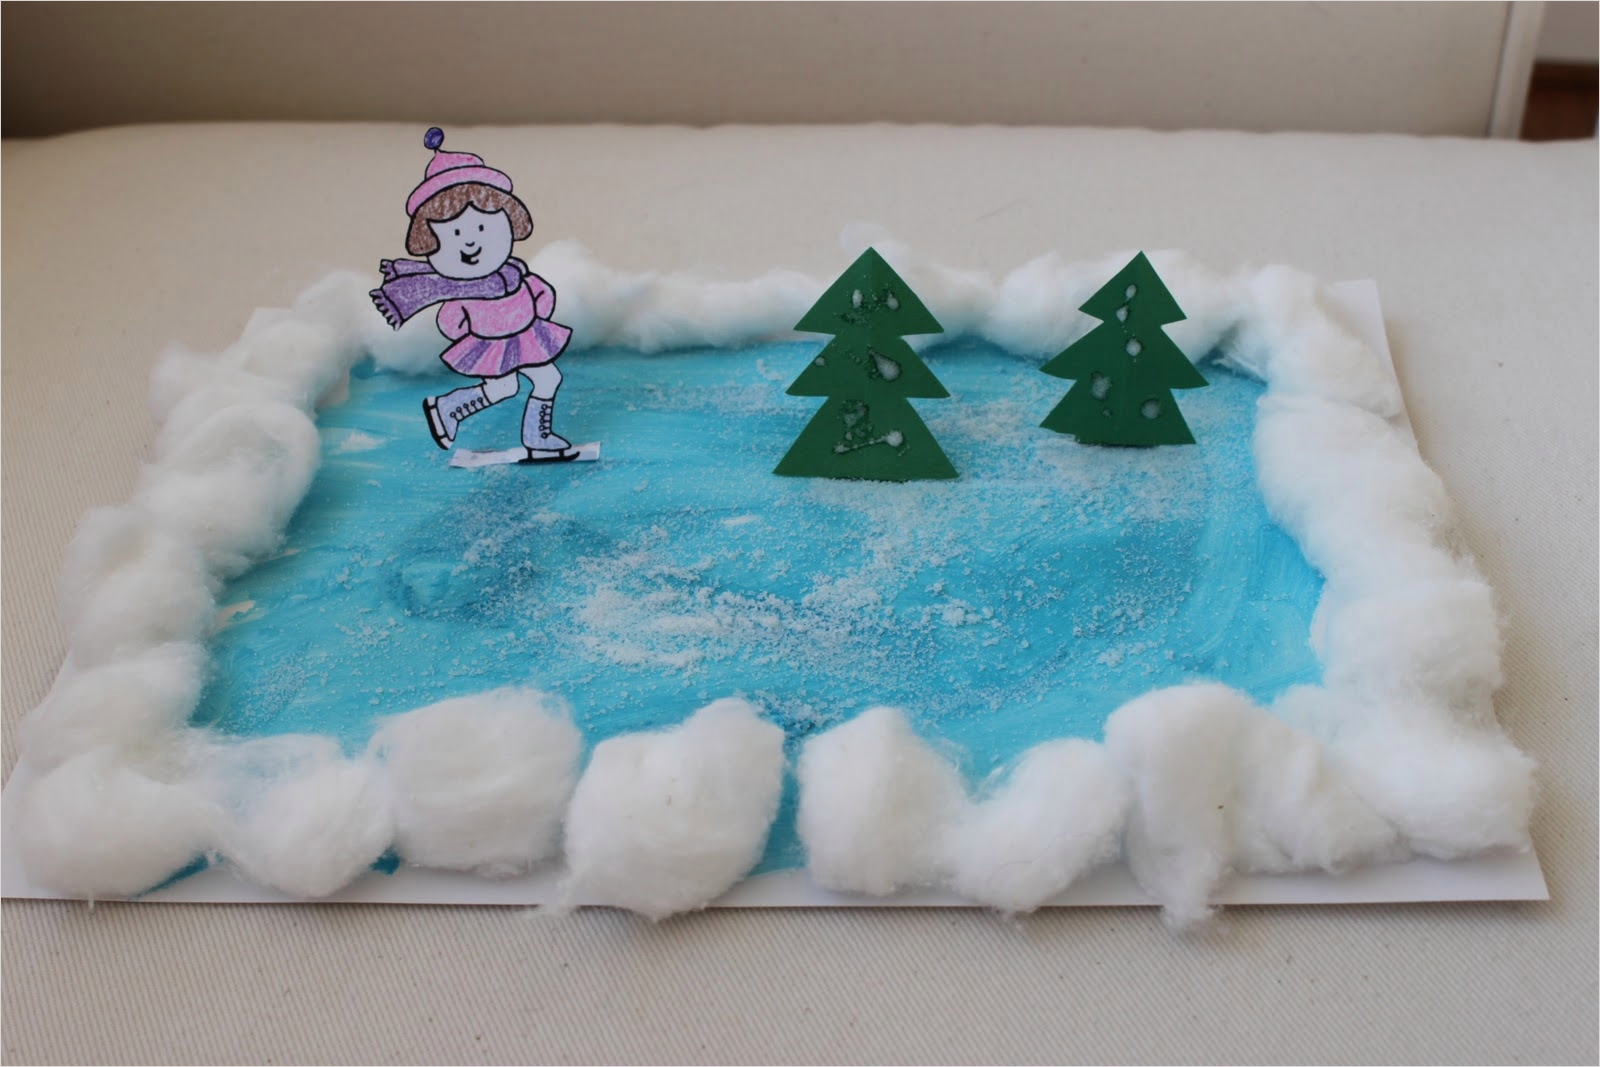 40 Diy Easy Winter Crafts 73 Playing House Fun Winter Crafts 5